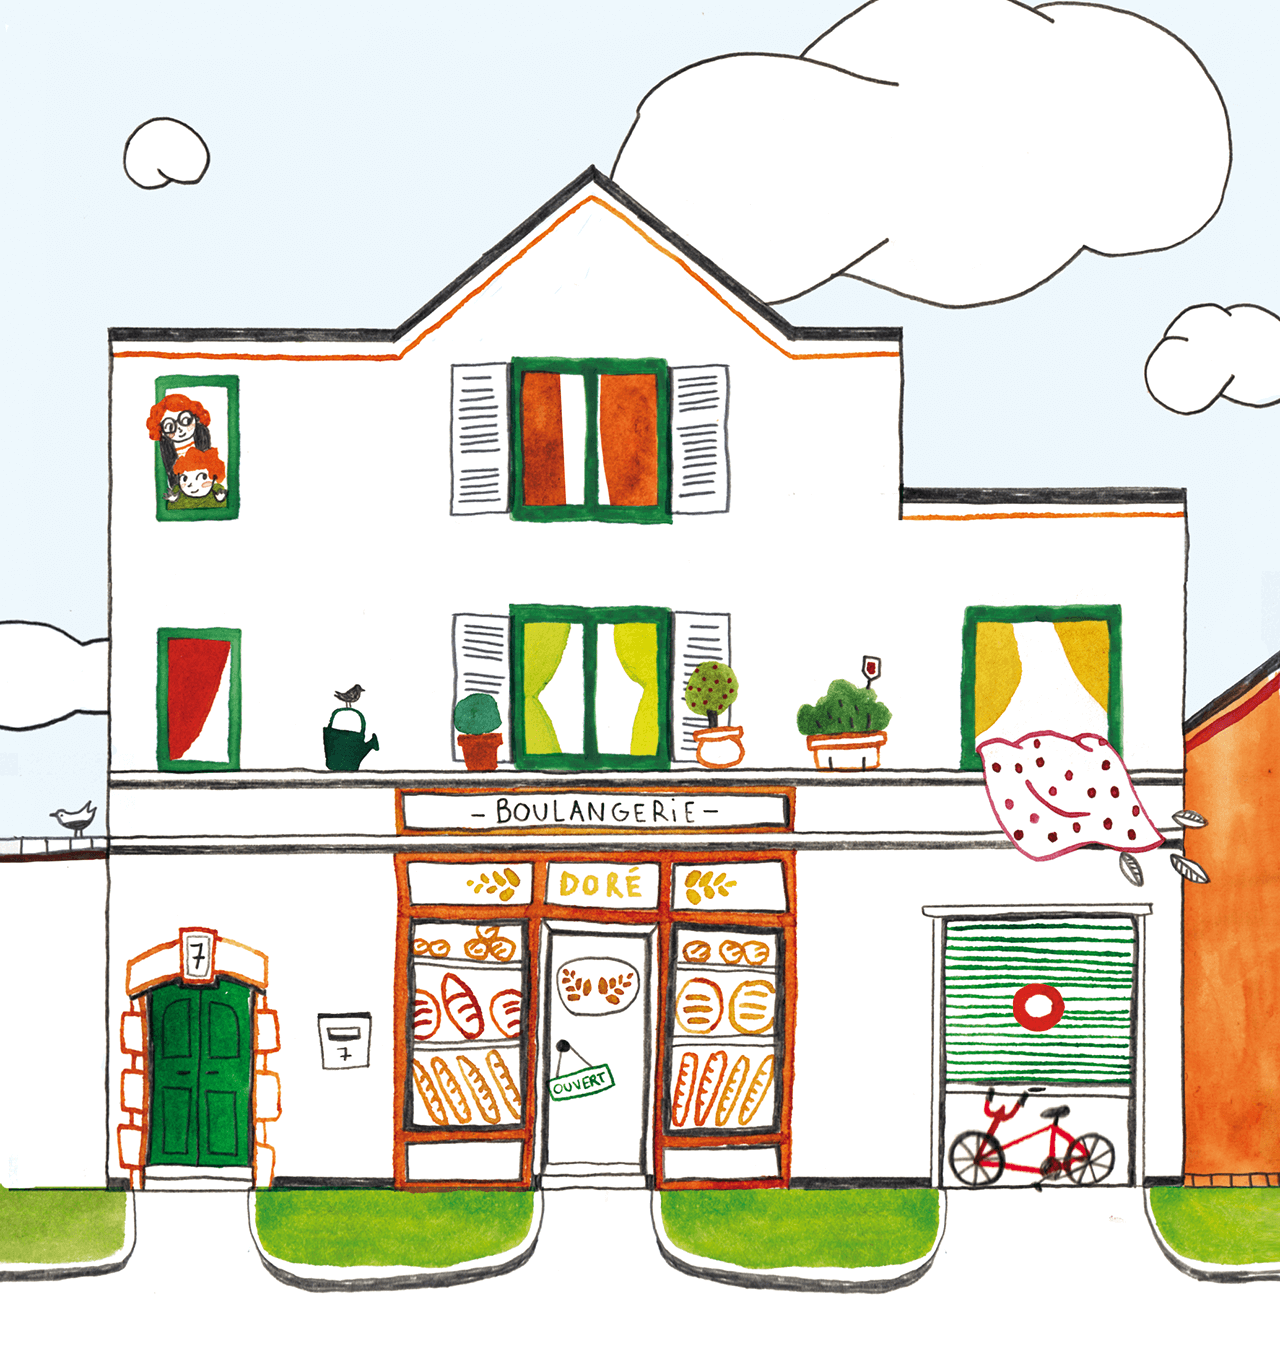 Kid's book illustration of a bakery's facade